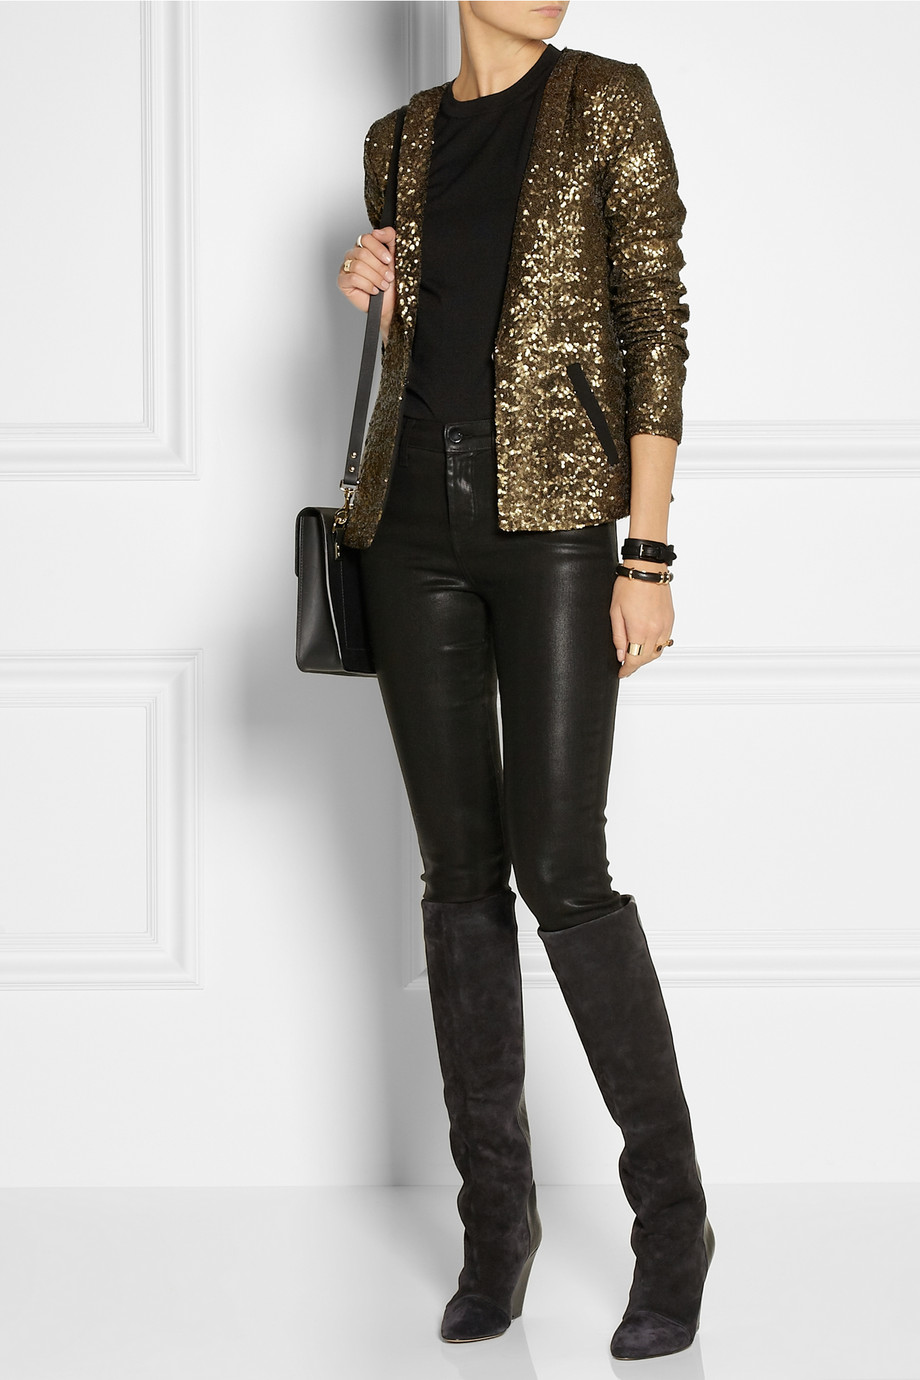 Style Yourself New Years Eve Party Outfits Lauren Messiah